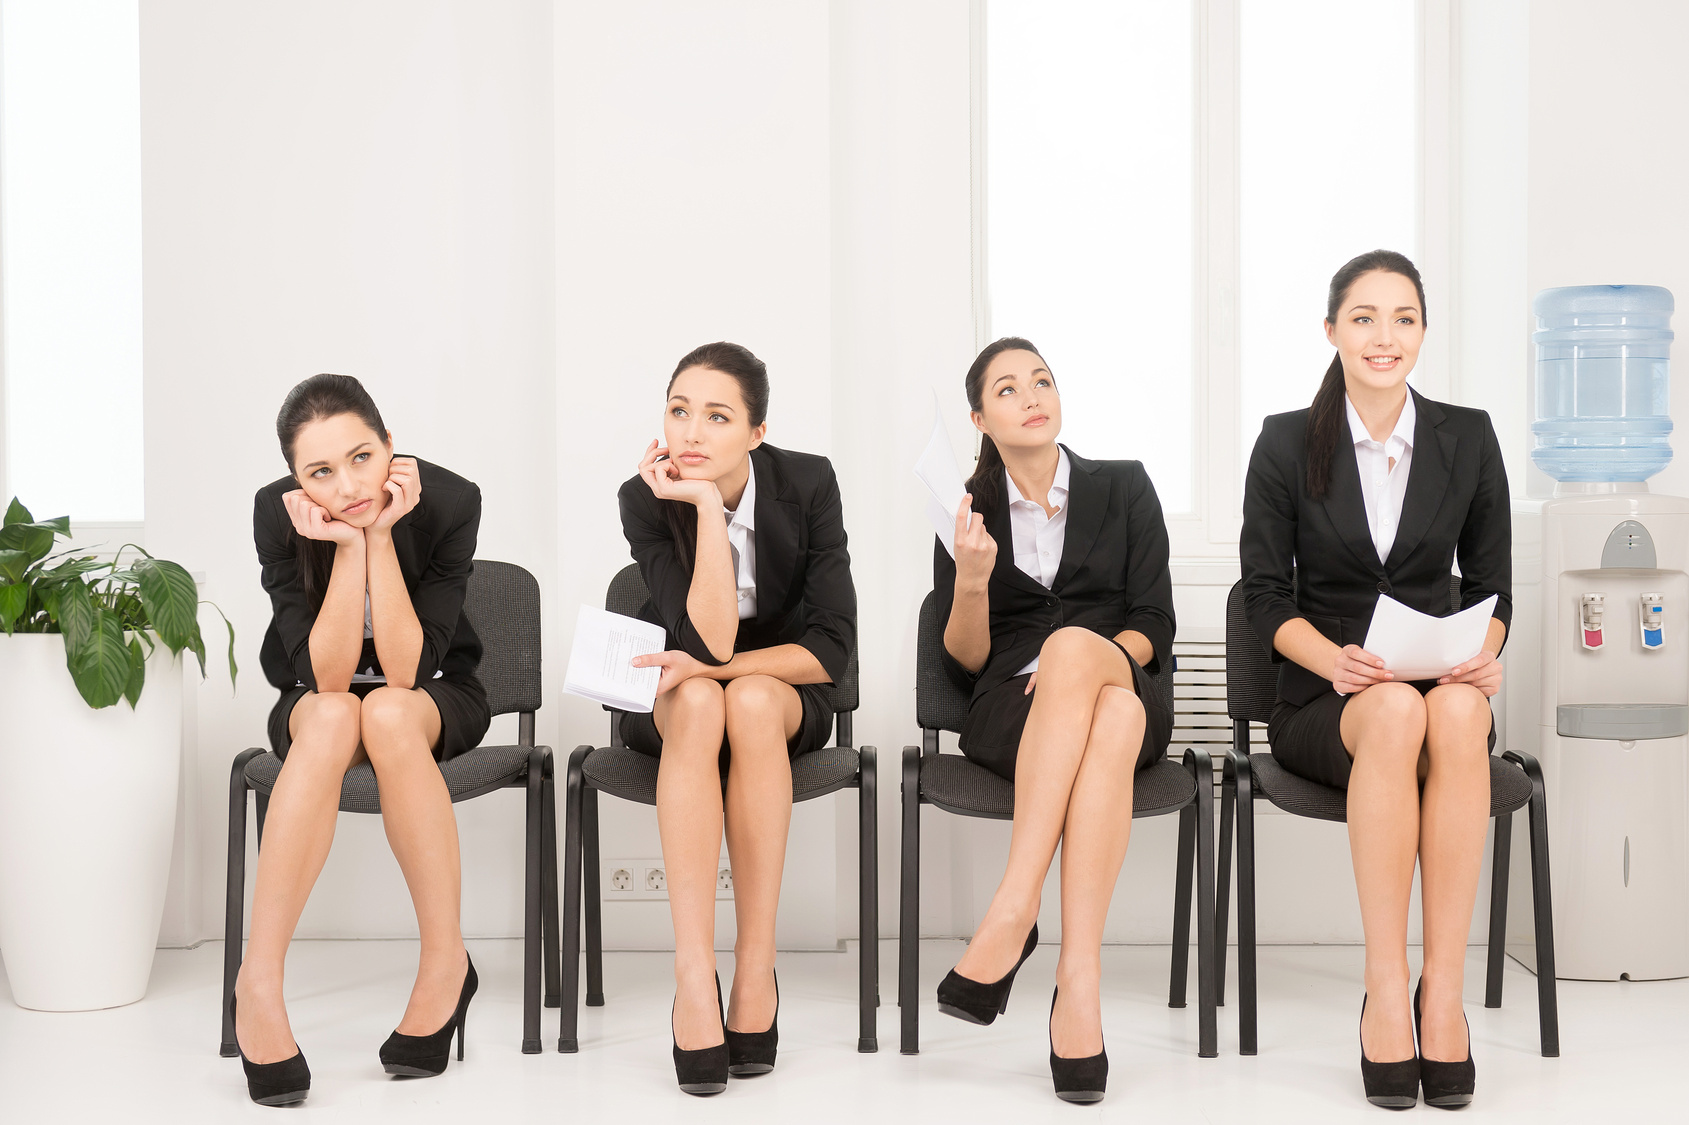 importance of body language for job interview - Preparing For A Job Interview Body Language